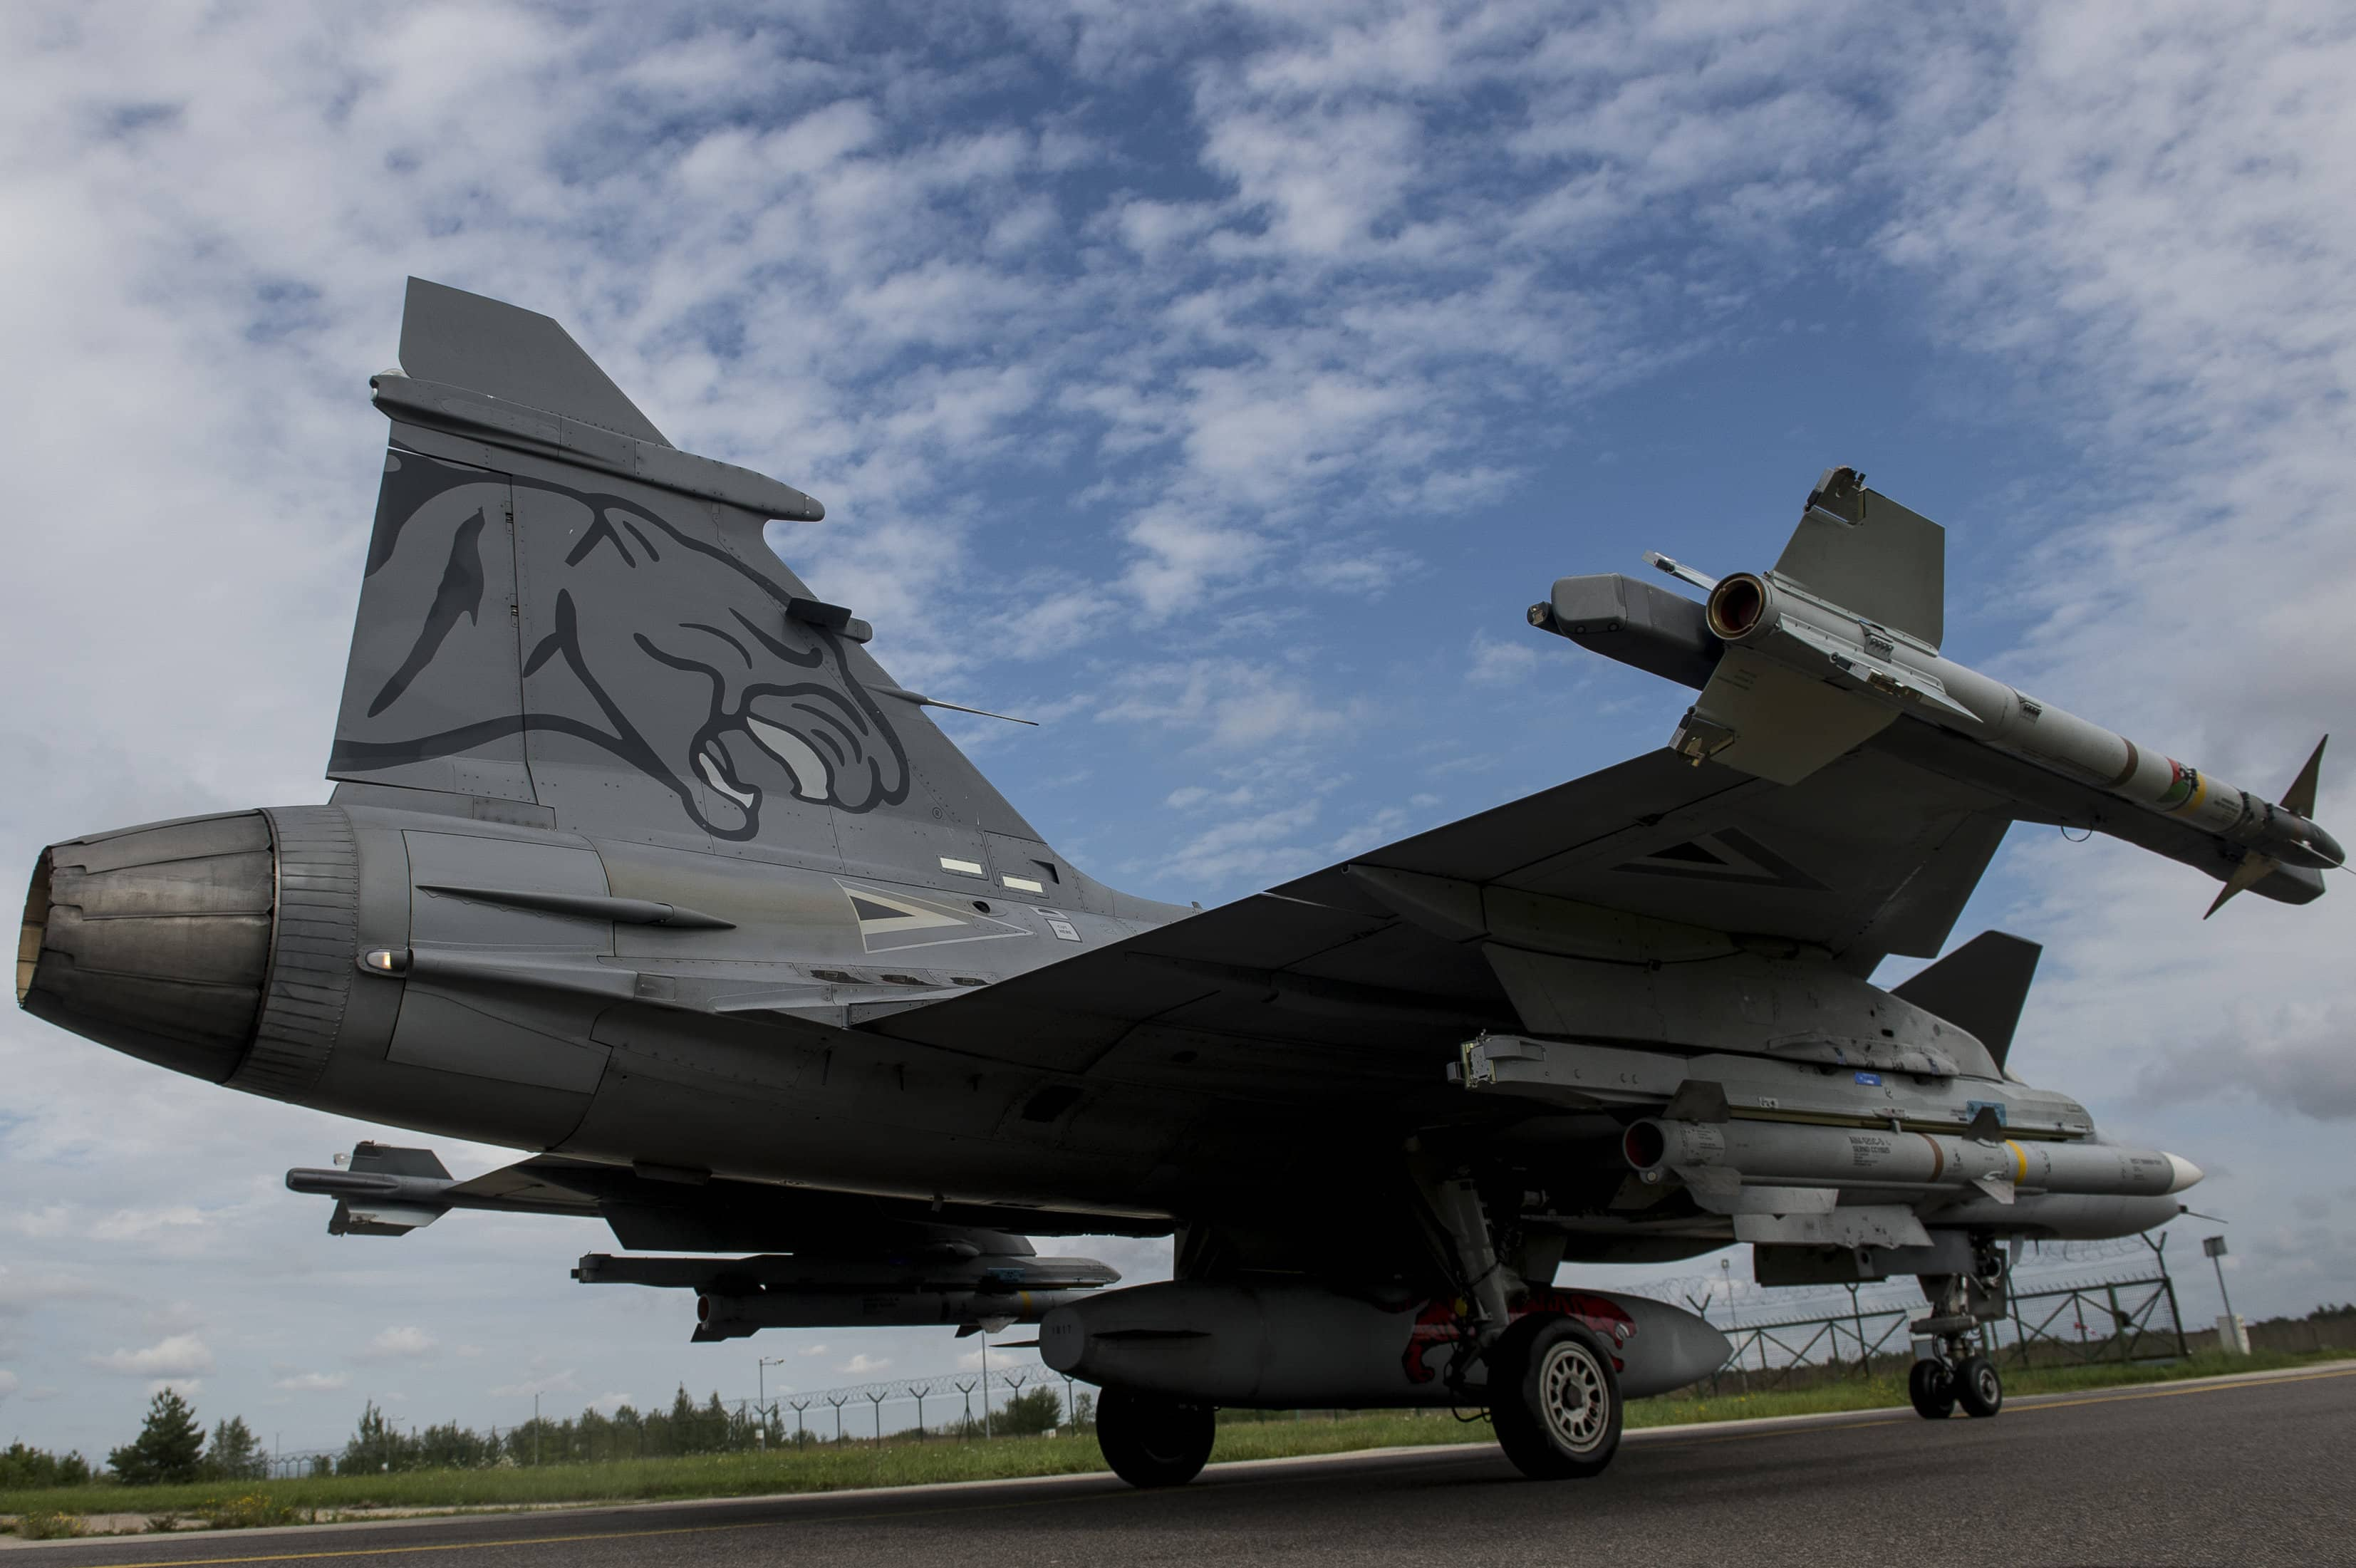 Gripens intercept British aircraft in Hungarian airspace